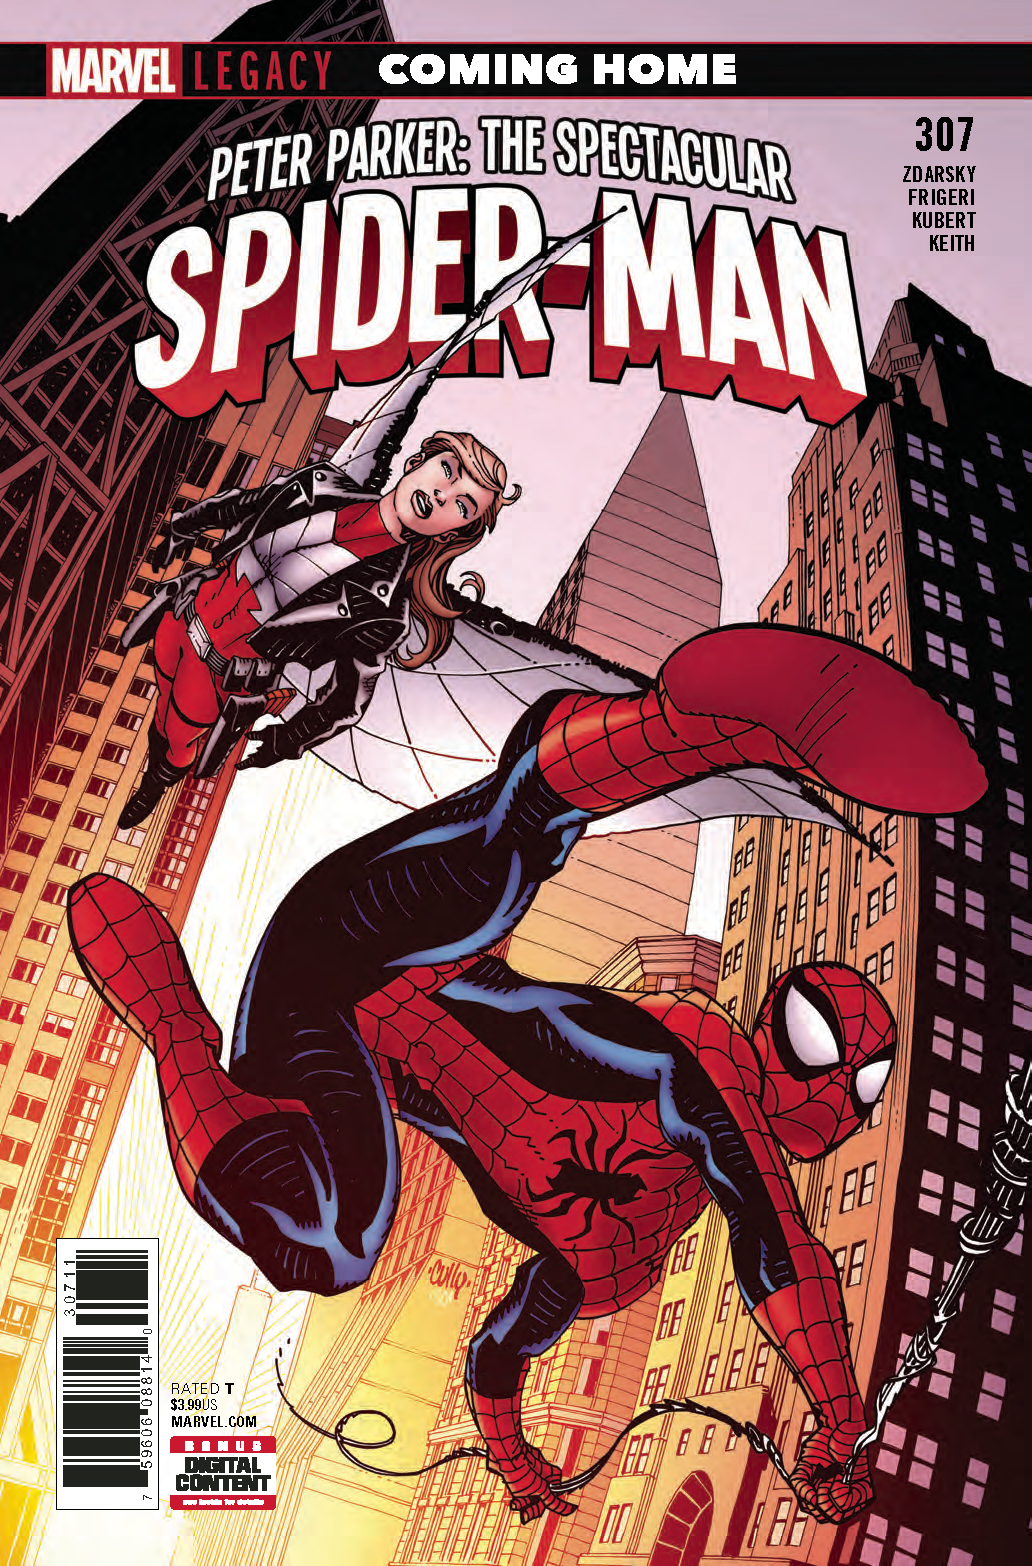 PETER PARKER SPECTACULAR SPIDER-MAN #307